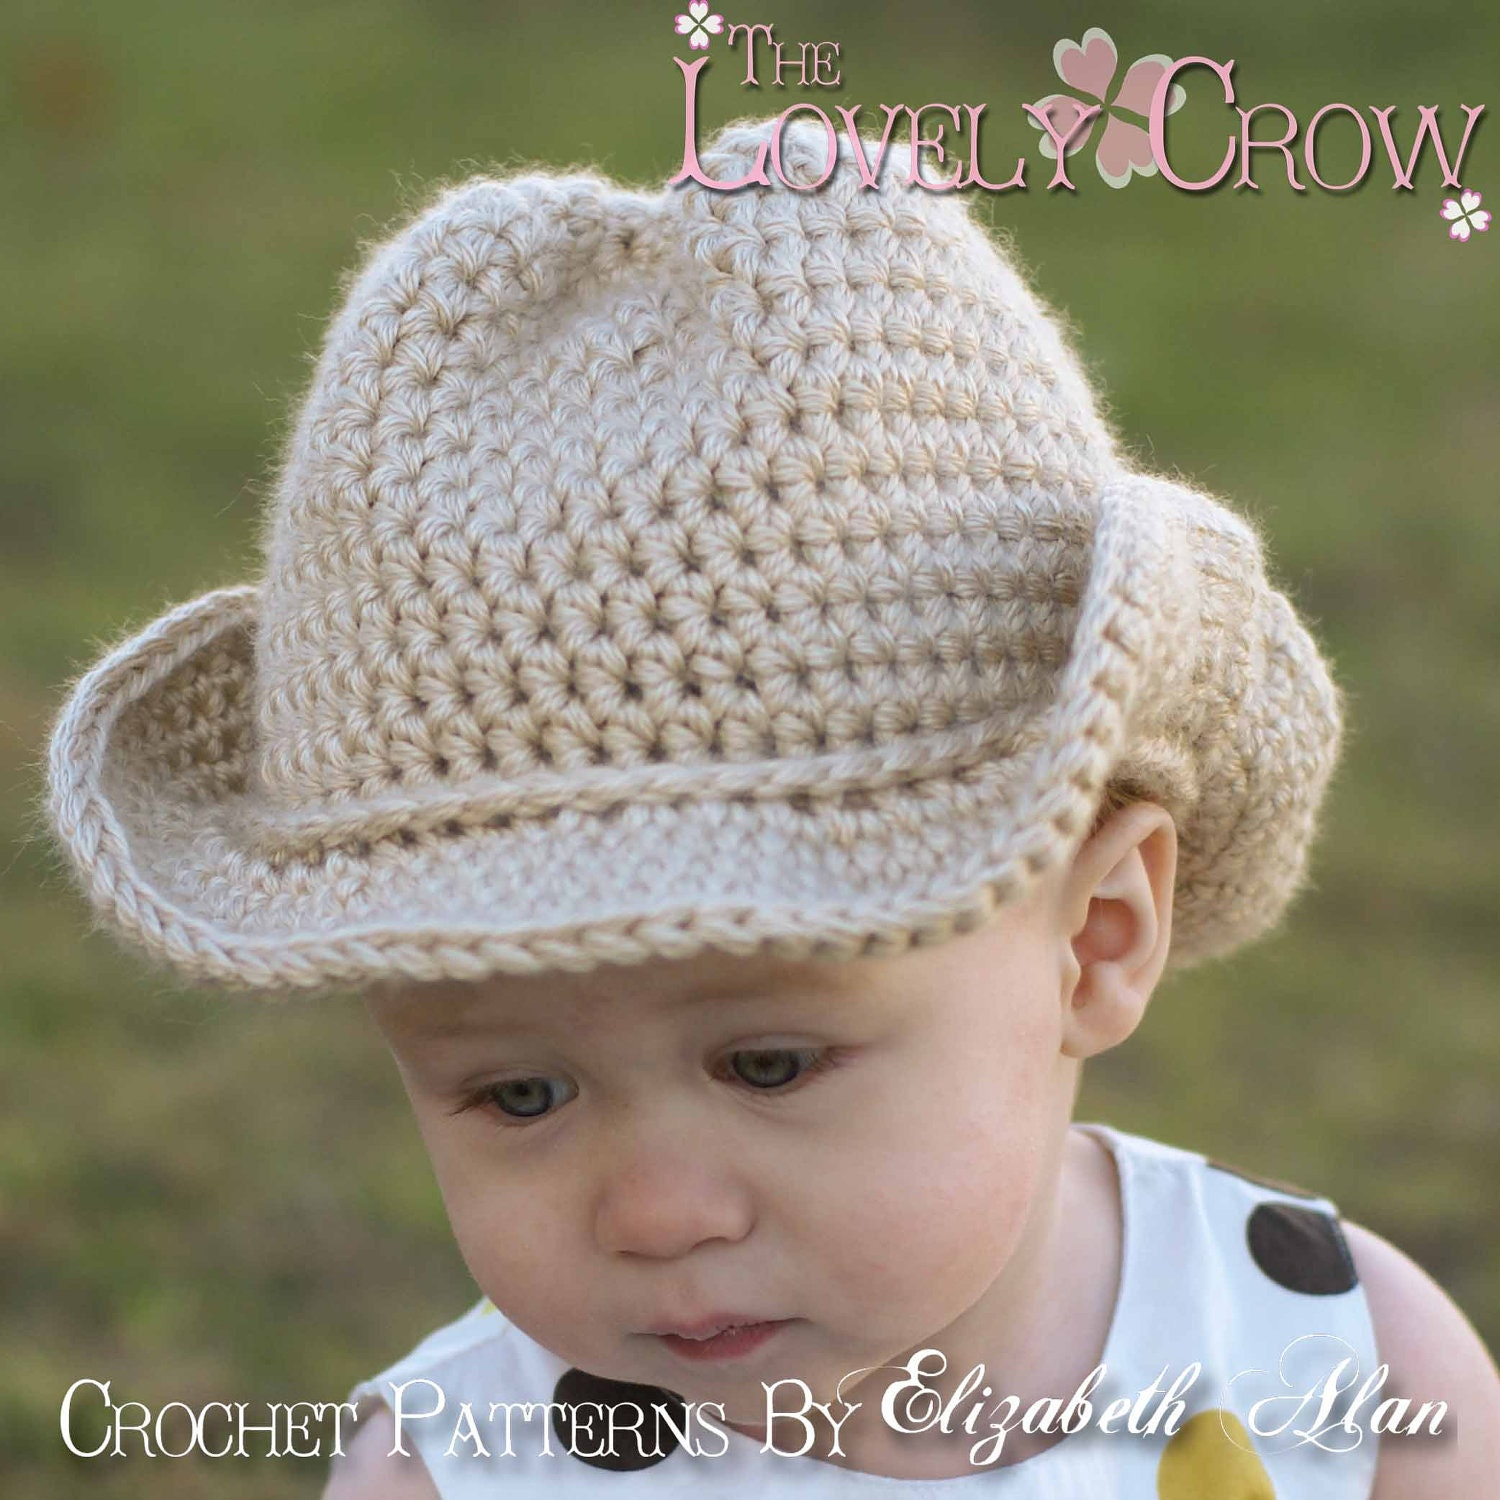 Crochet Newborn Hats : Baby Cowboy Crochet Pattern Cowboy Hat for BOOT by TheLovelyCrow